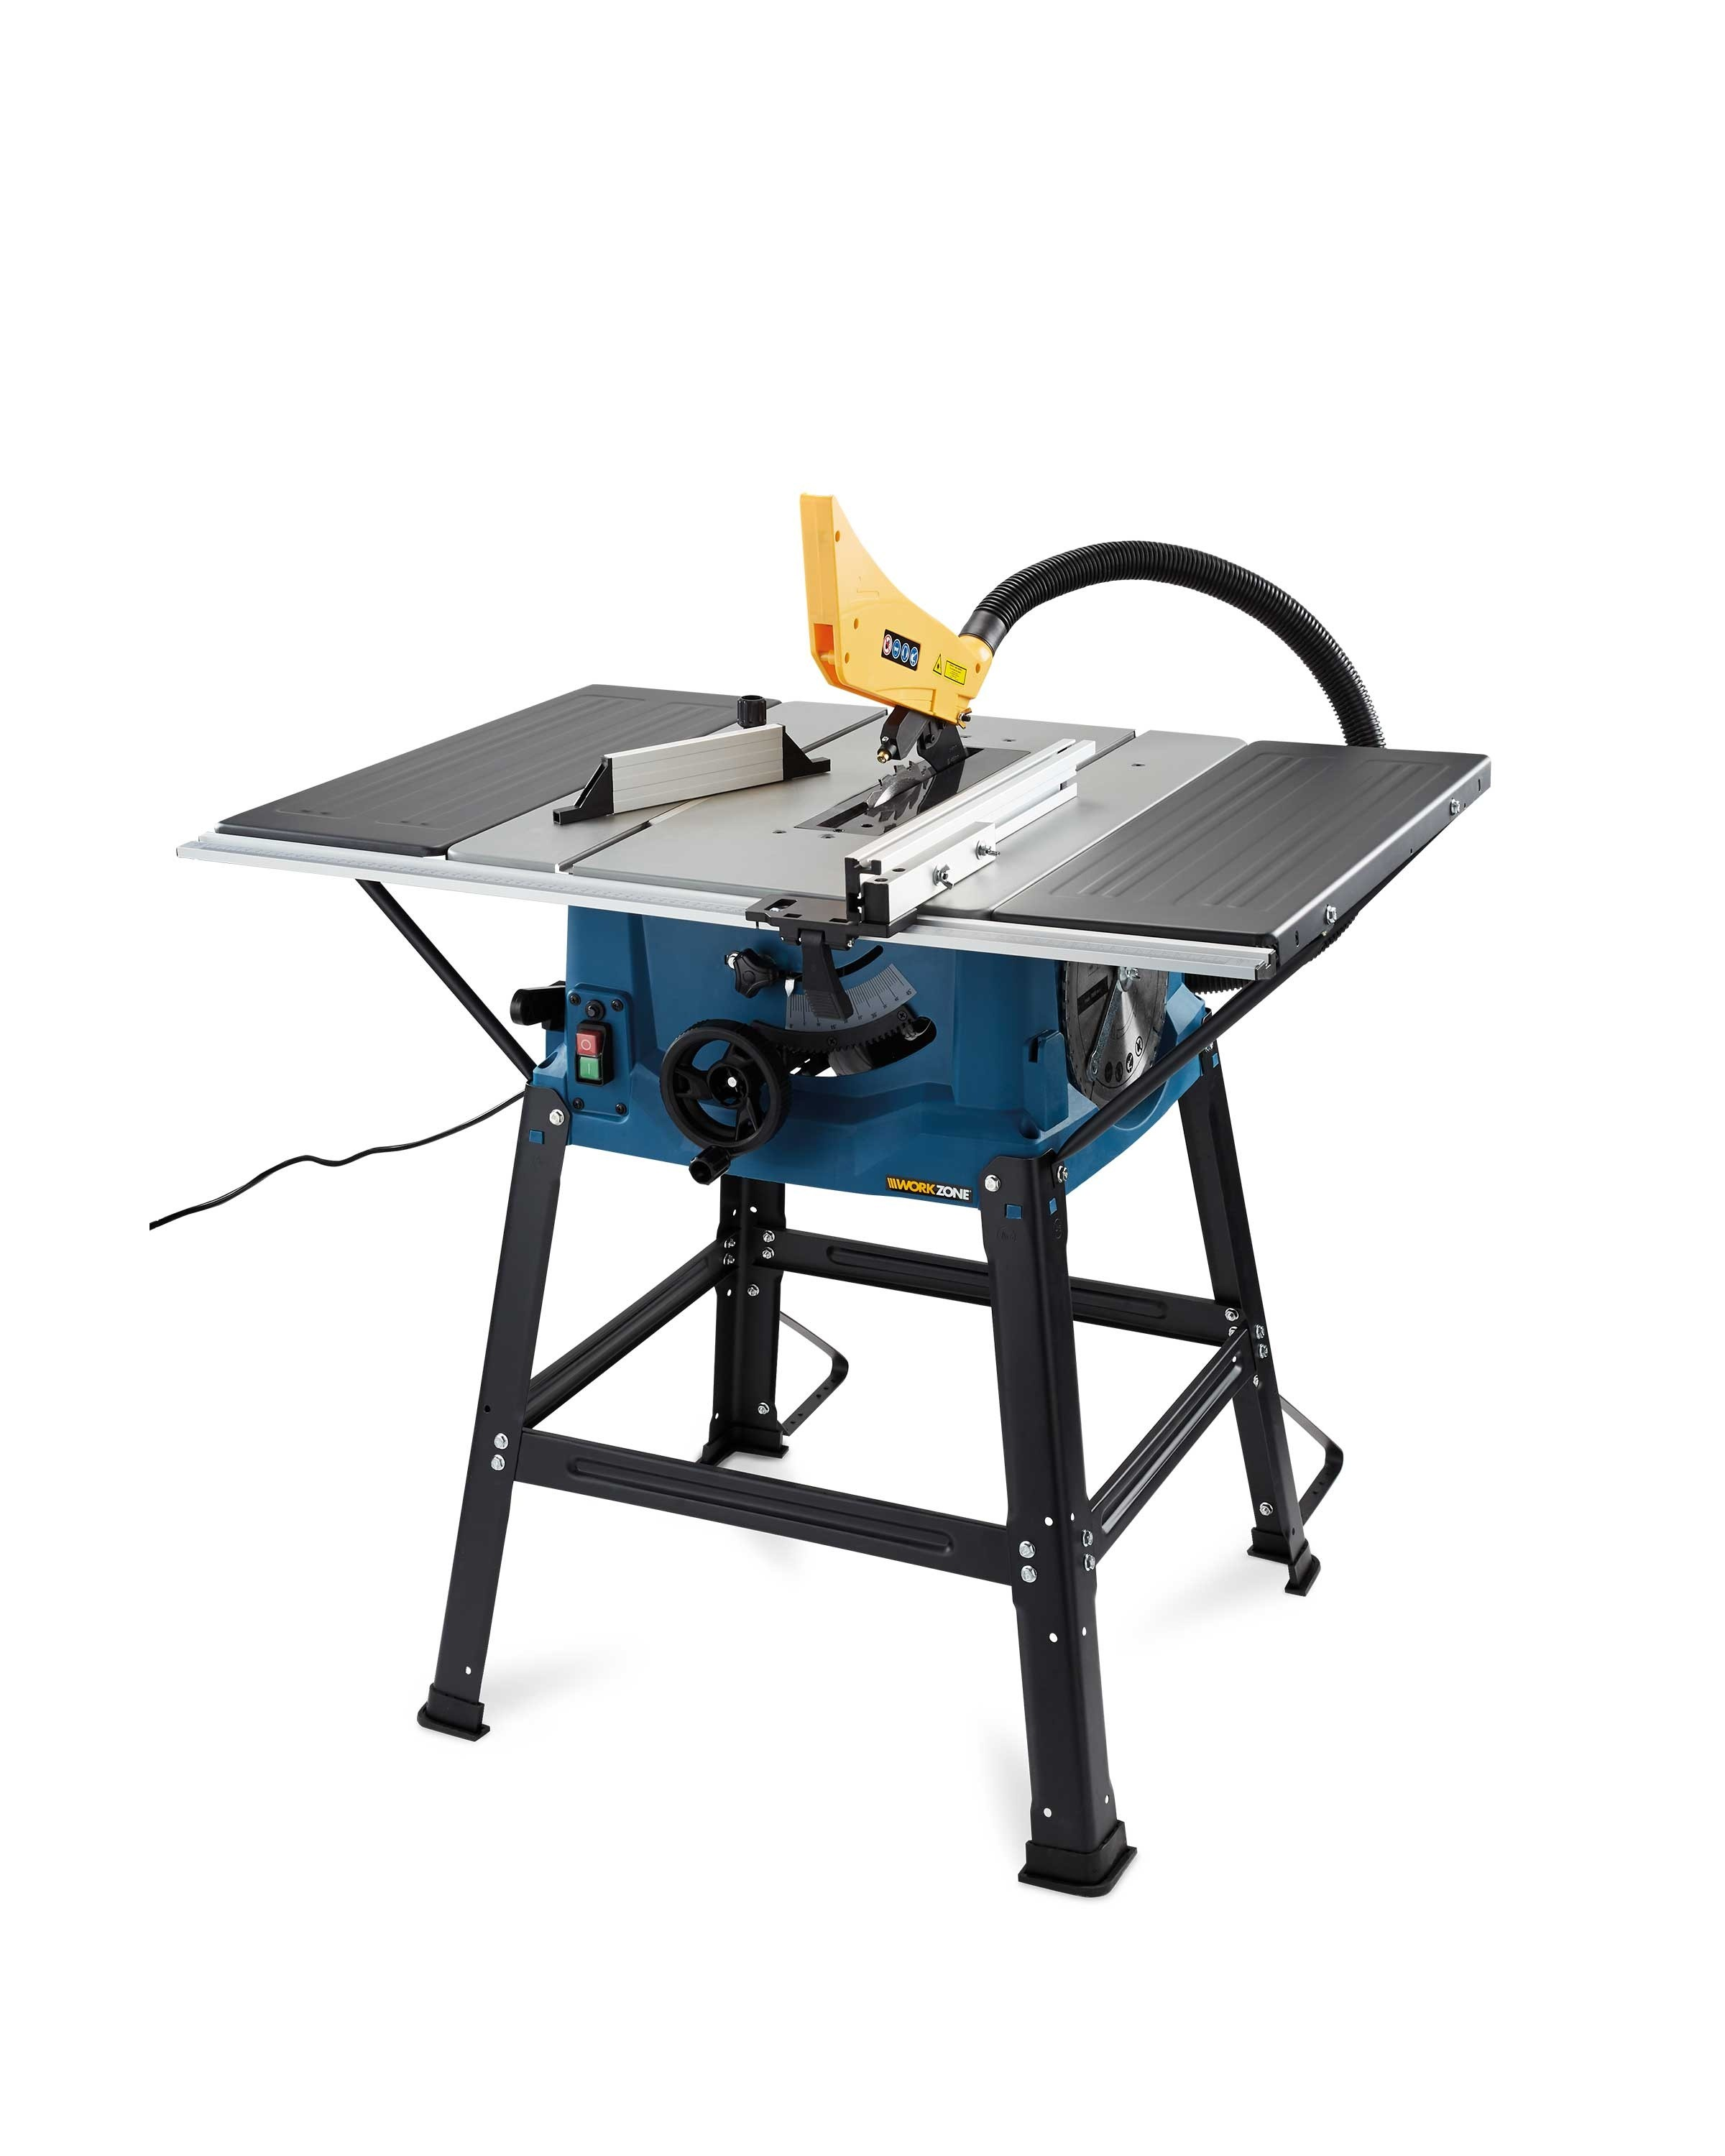 Astounding Workzone Table Saw Ocoug Best Dining Table And Chair Ideas Images Ocougorg